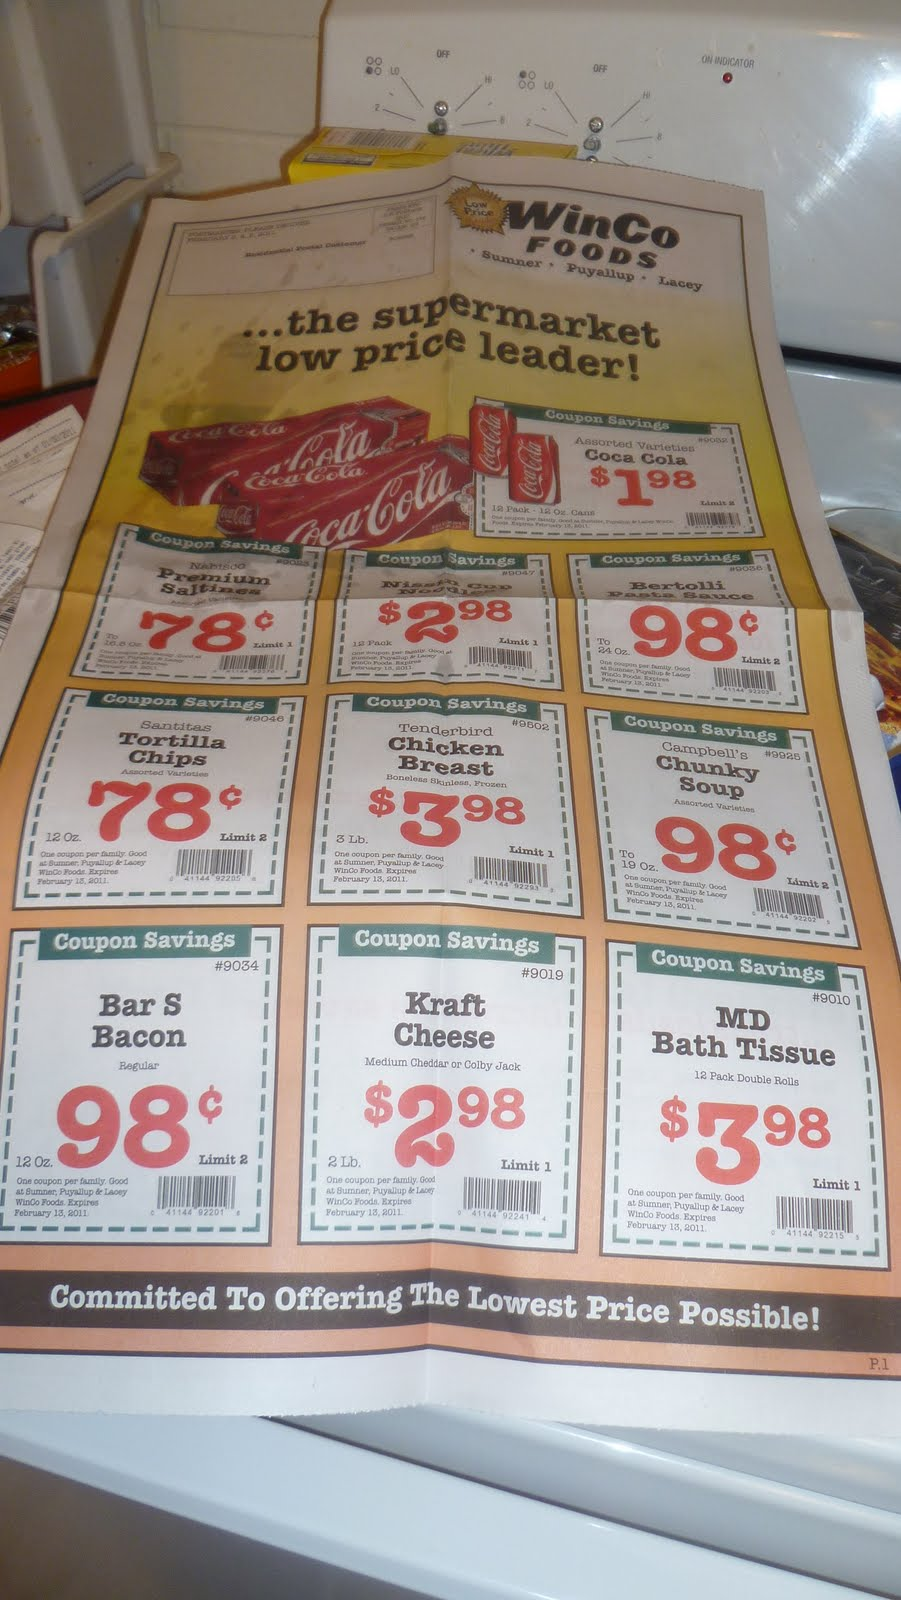 Images of Santitas Tortilla Chips Coupons - #rock-cafe